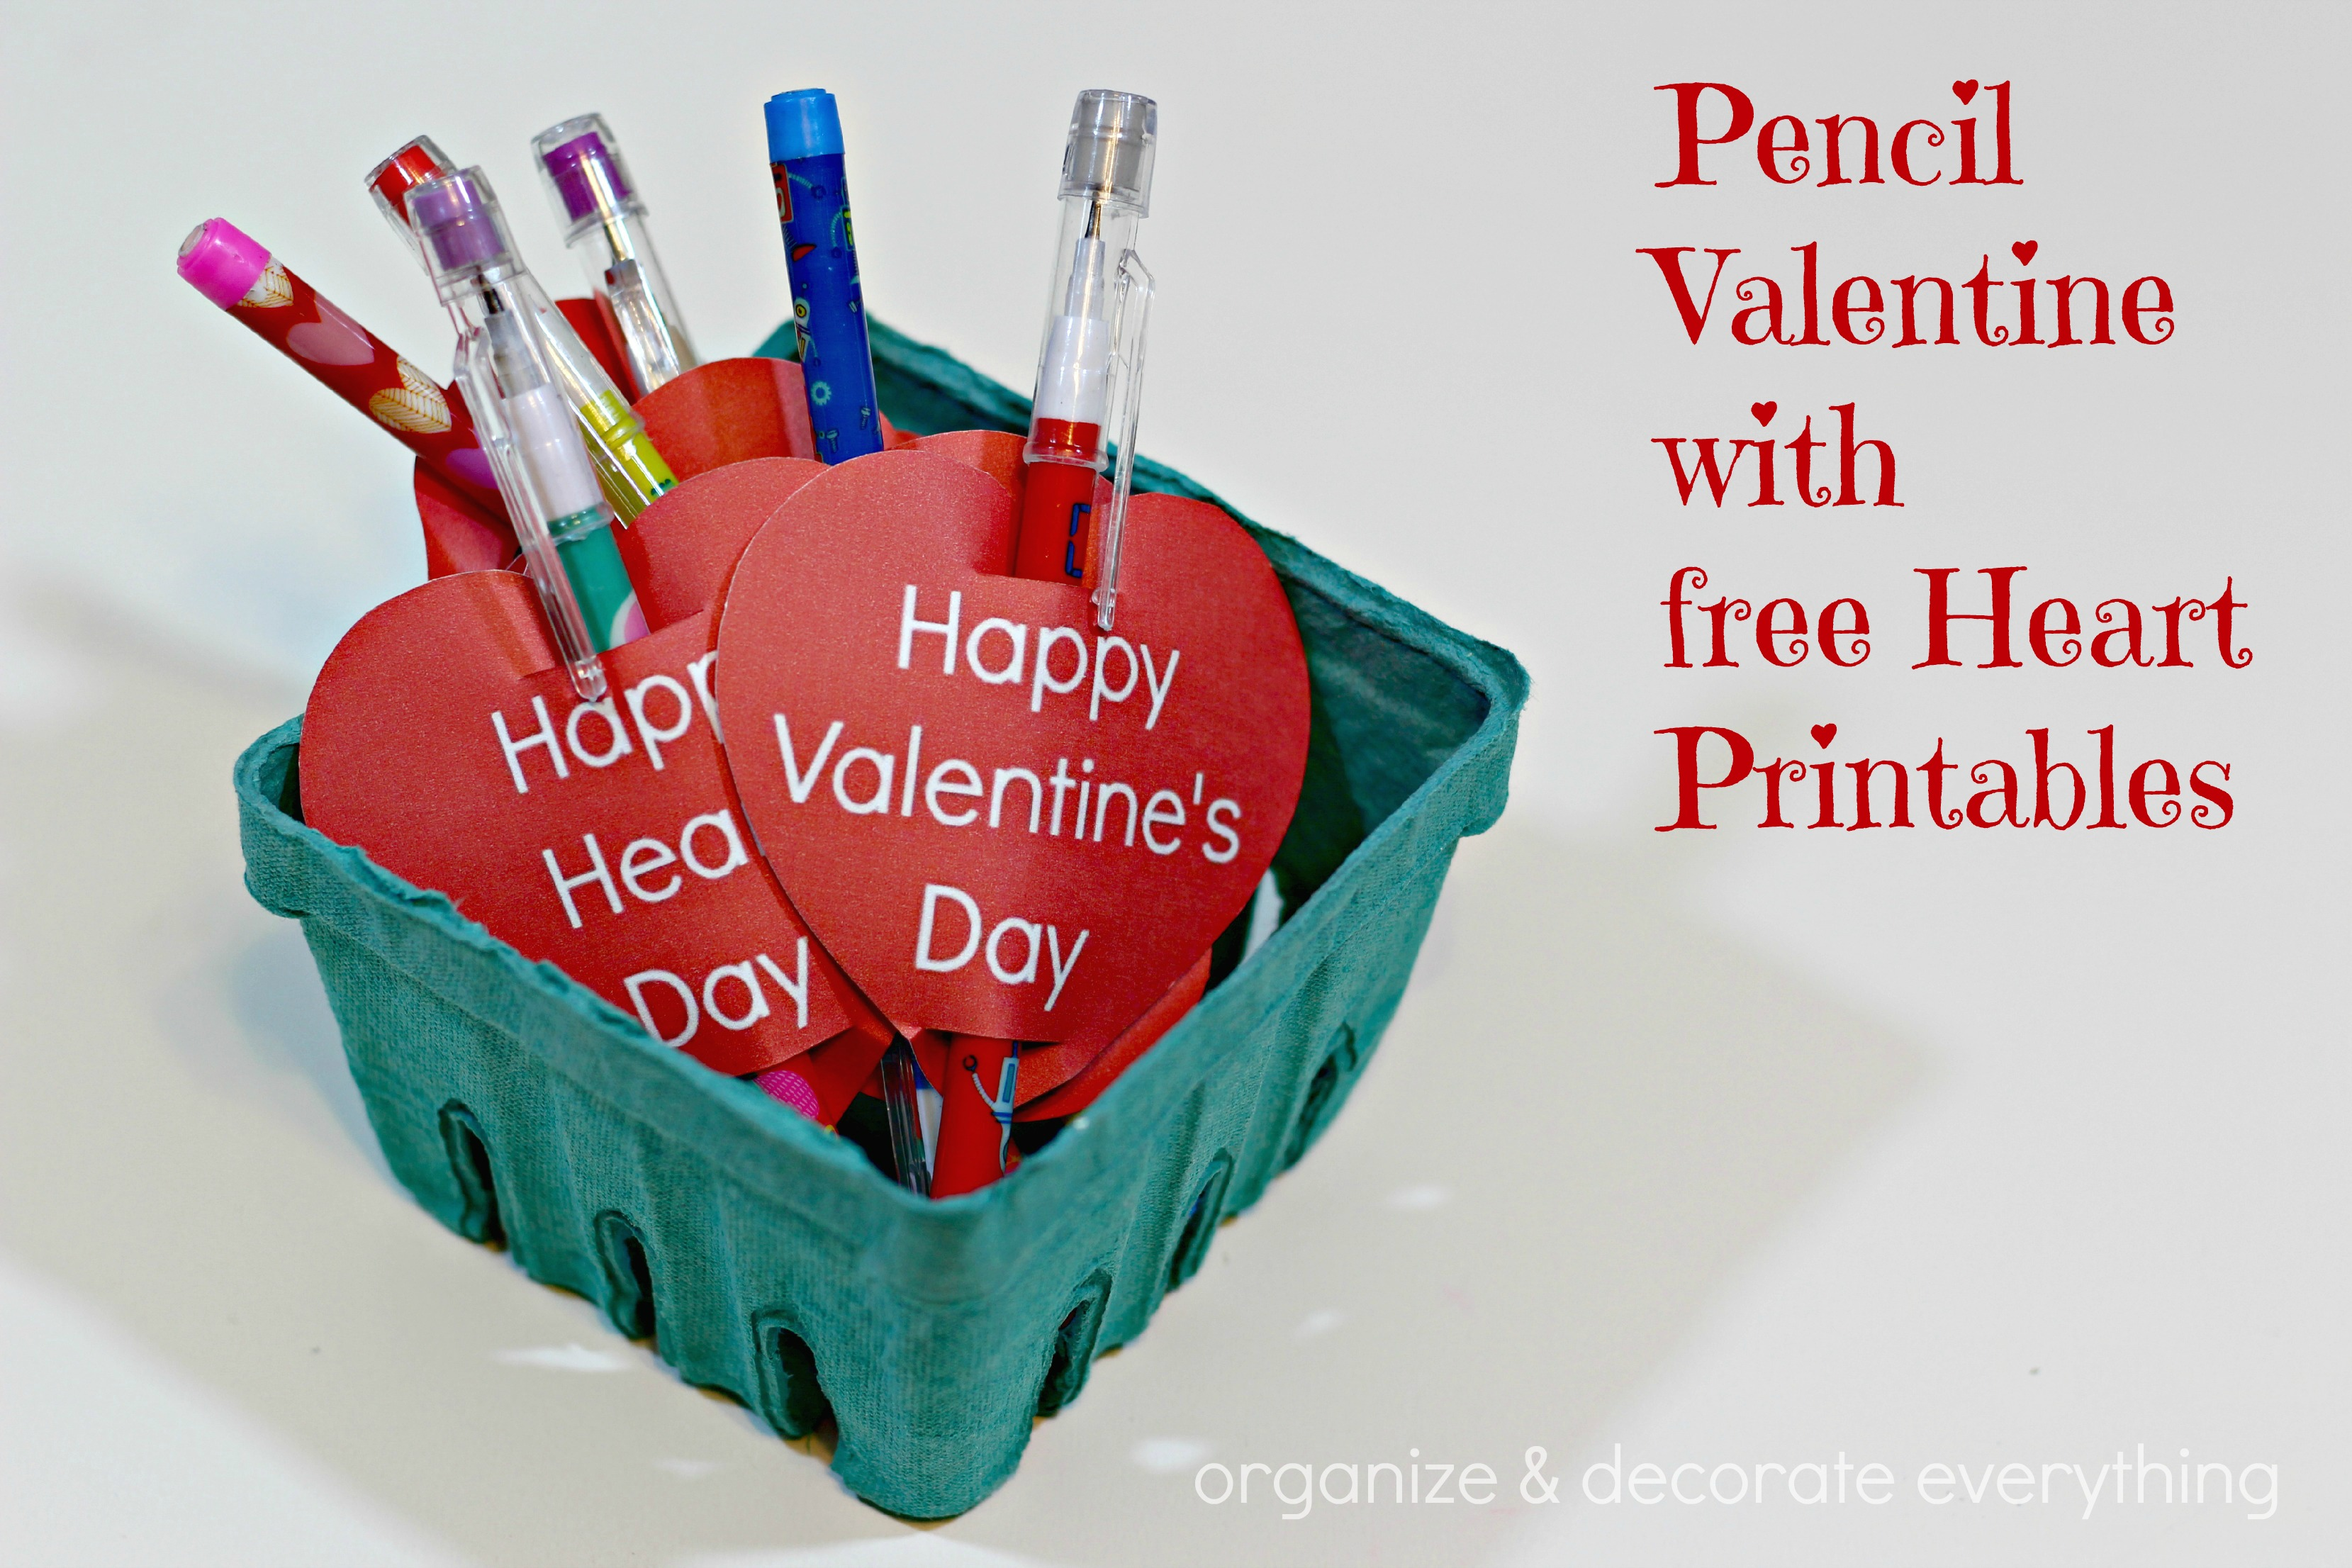 picture regarding Pencil Valentine Printable identify Pencil Valentine with cost-free Centre Printables - Set up and